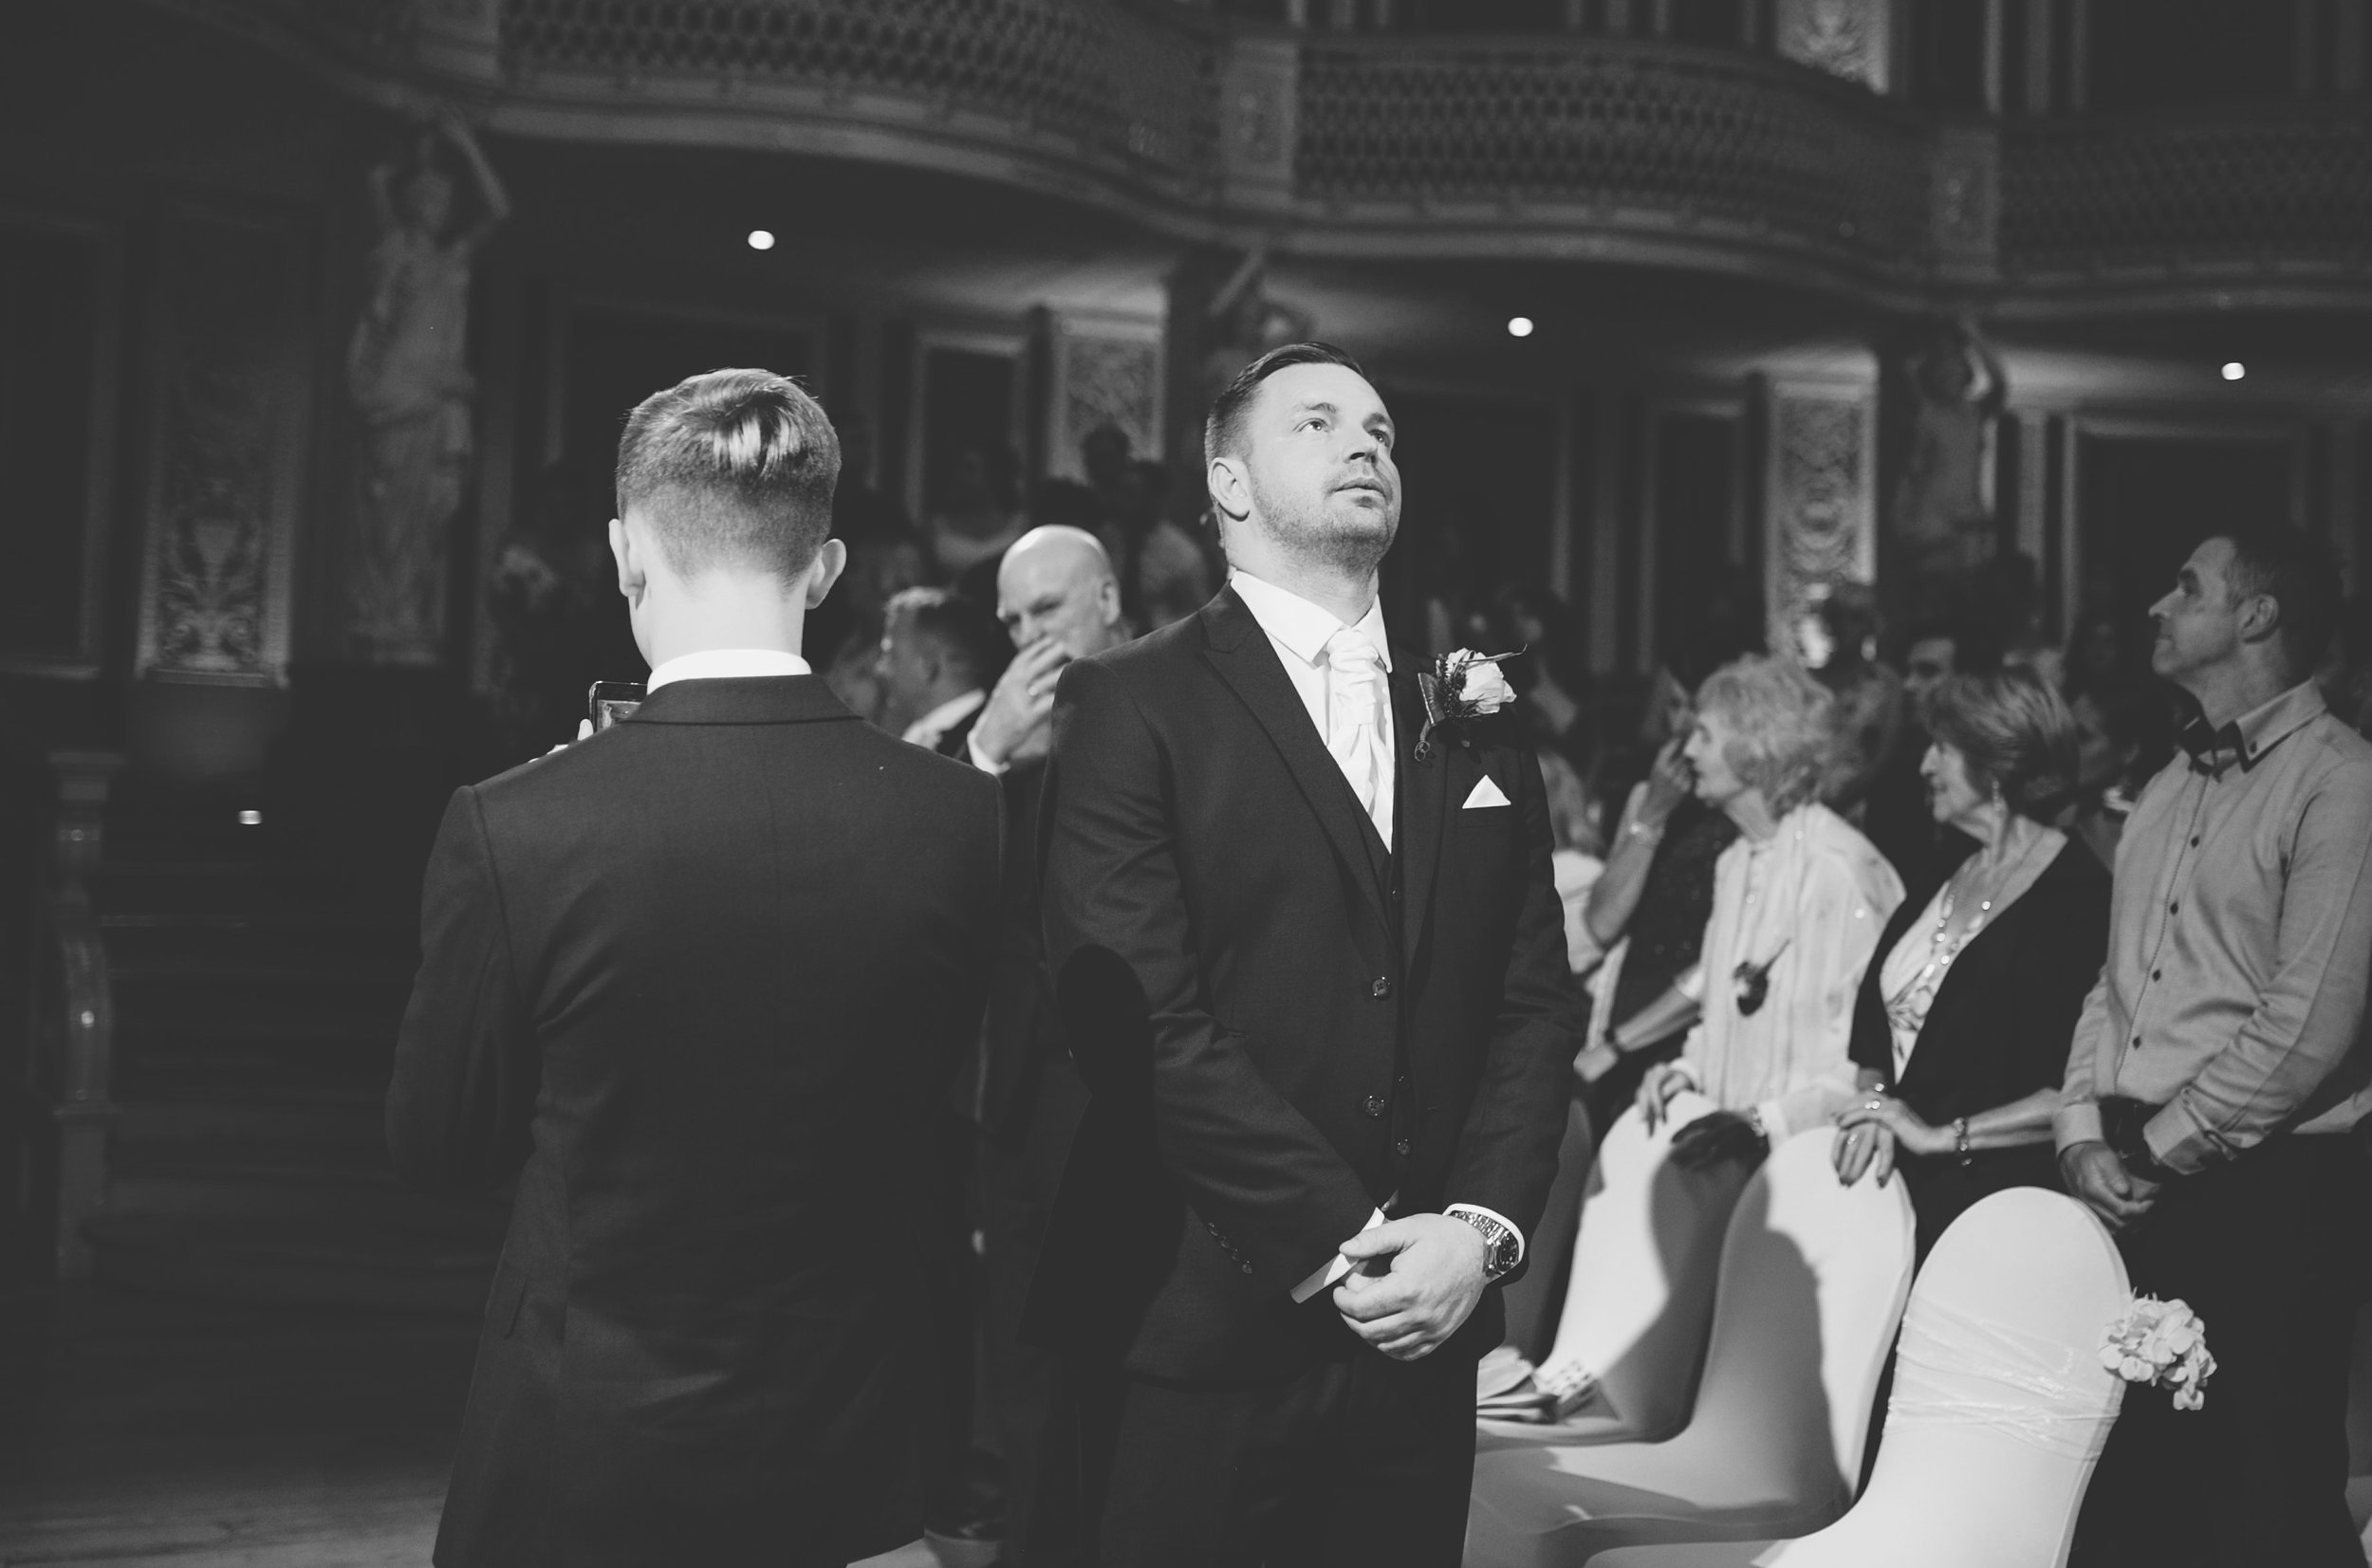 Wedding+photos+at+st+georges (16 of 39).jpg